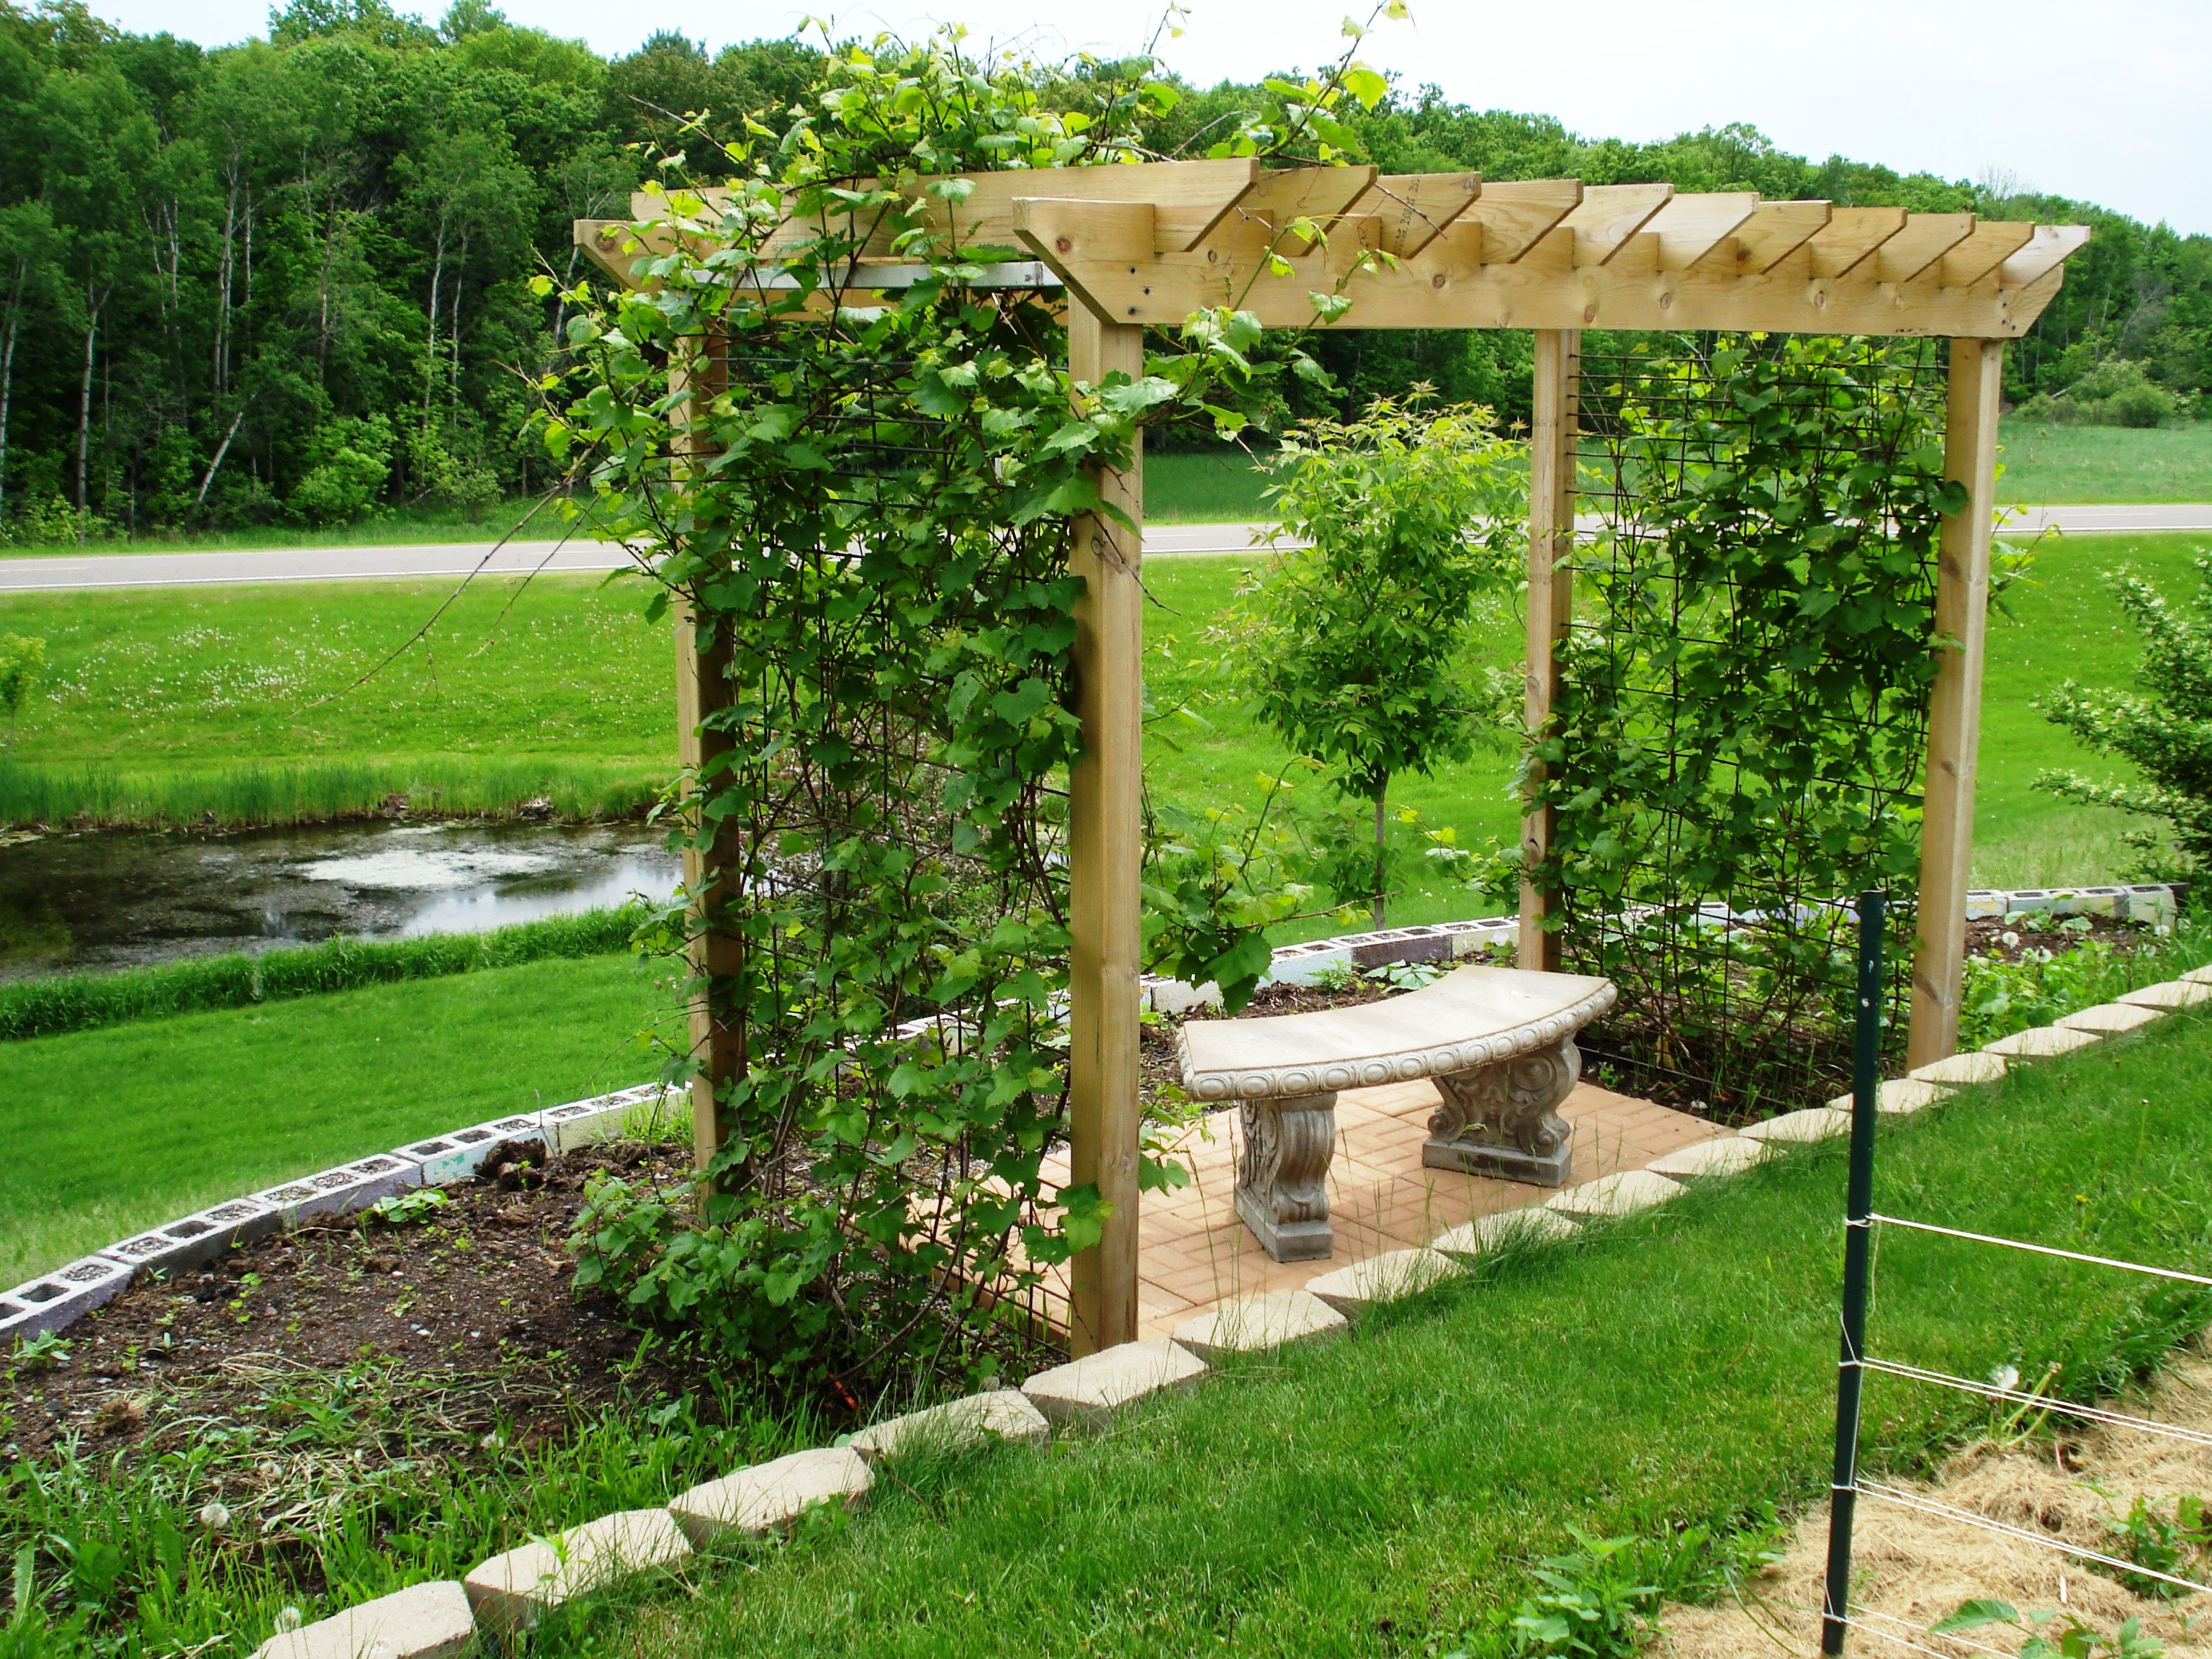 The Grape Arbor my honey built for our yard with the